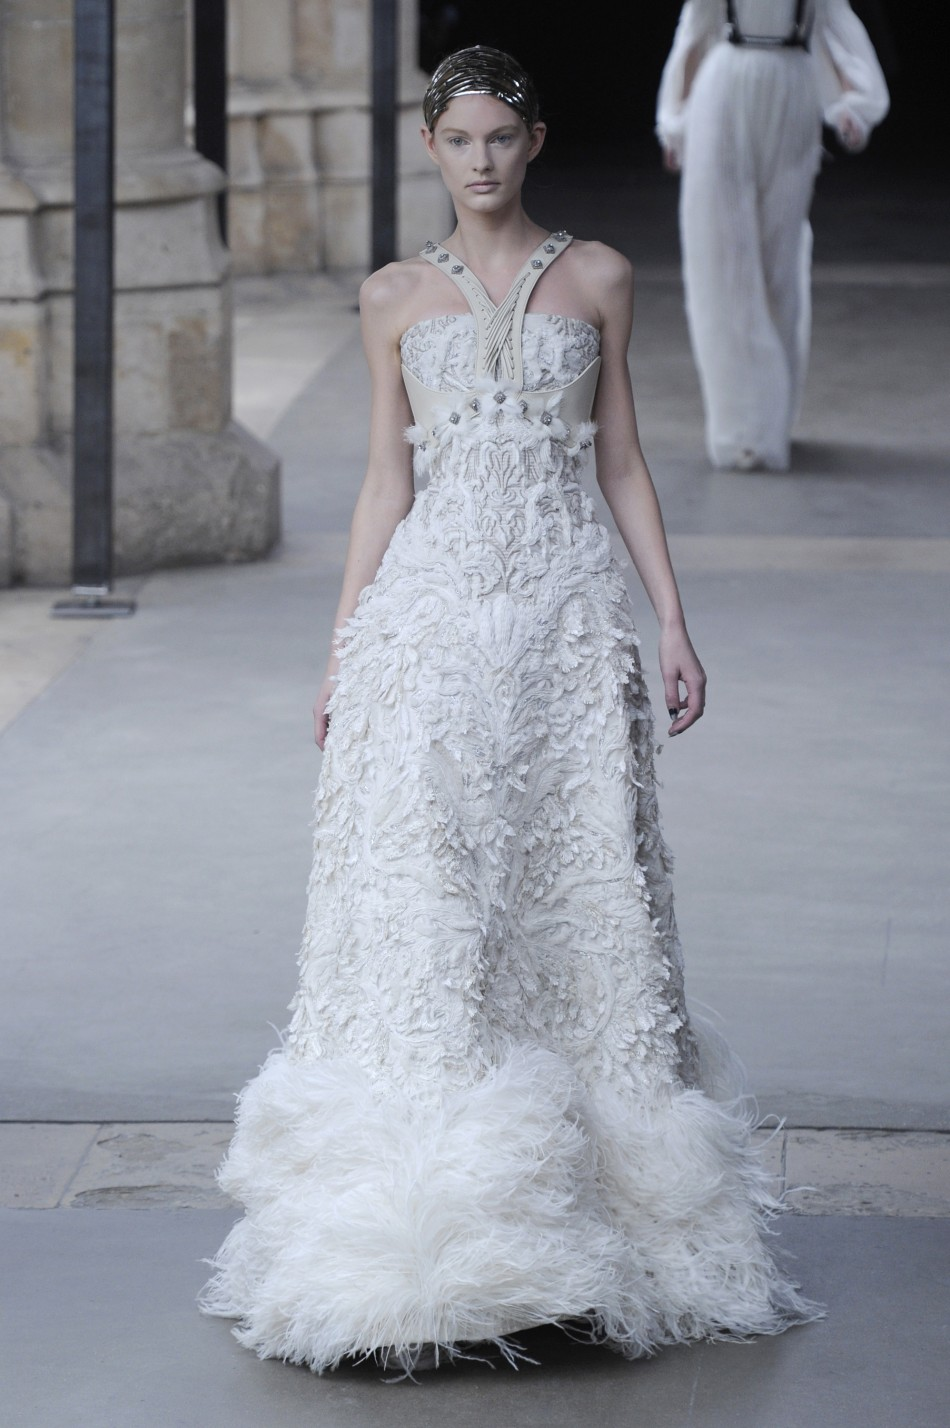 Cute Wedding Dress Like Kate Middleton Pictures Inspiration ...